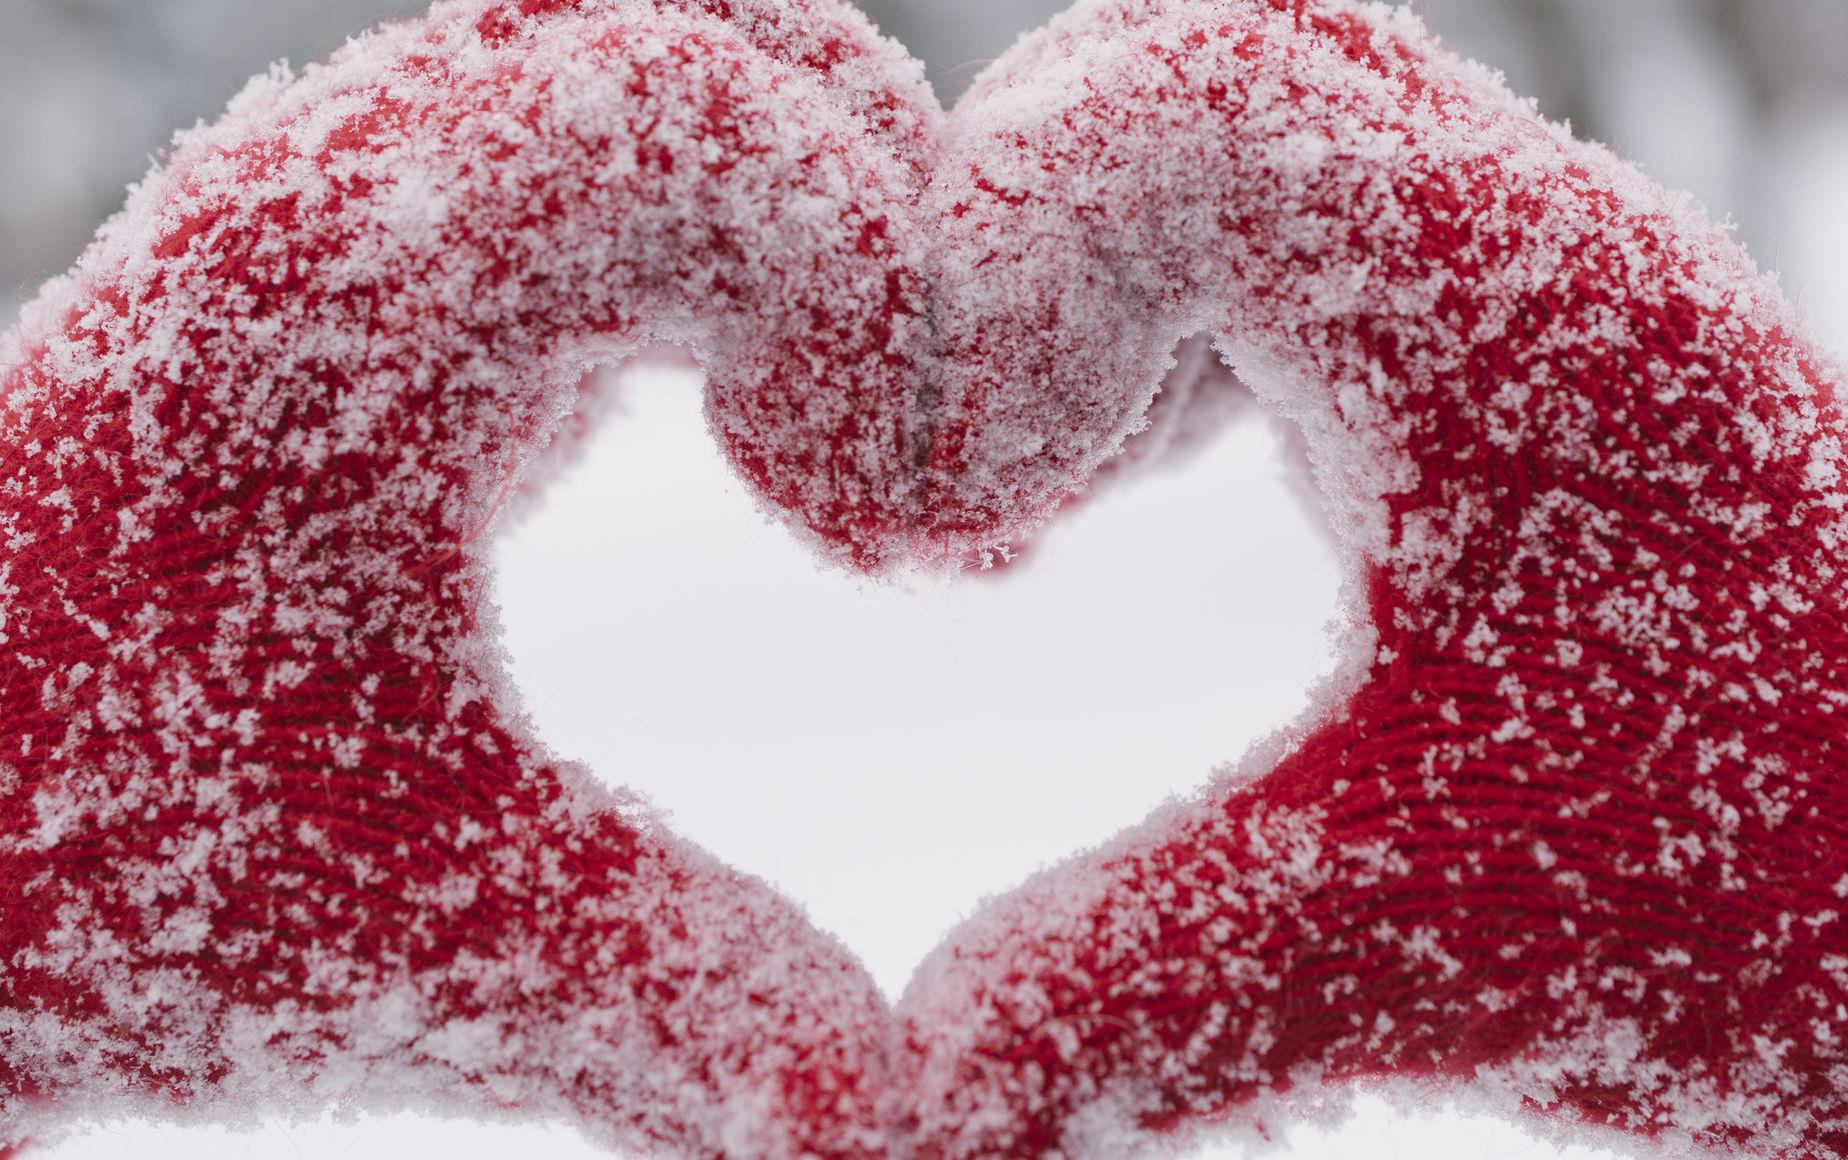 Hands wearing red mittens form a heart covered with snow